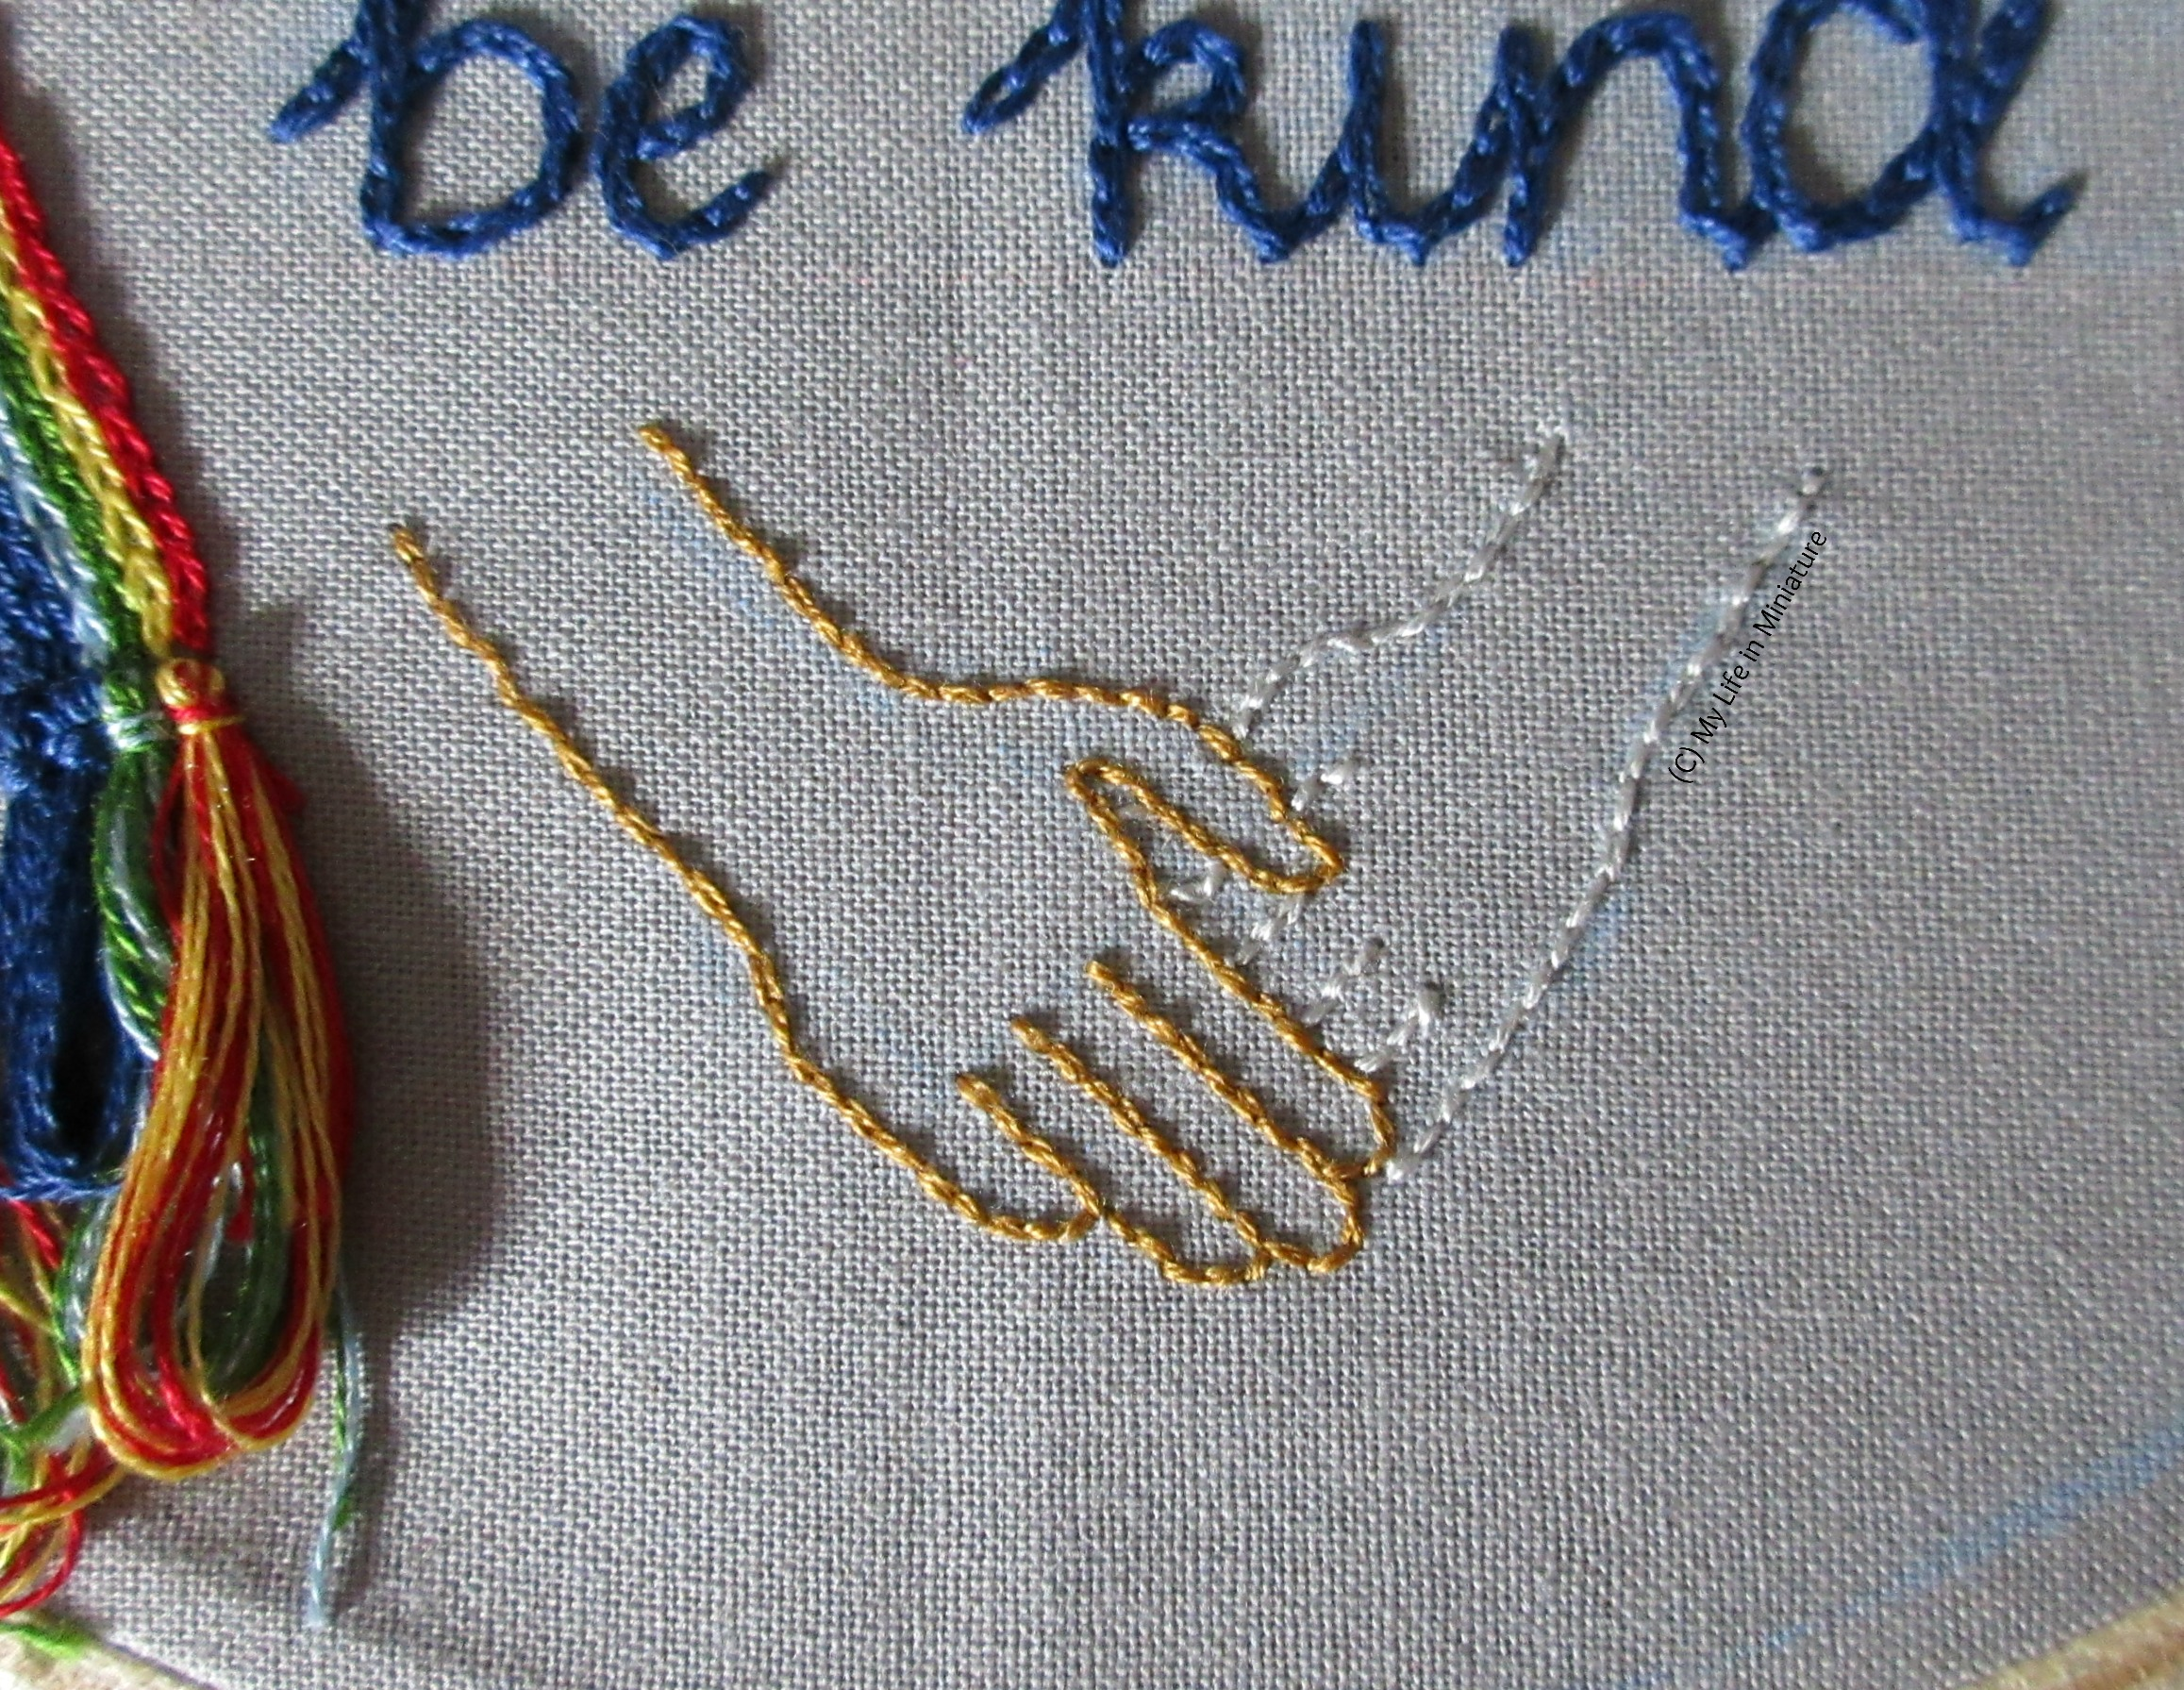 Image shows the bottom of the grey hoop. The gold hand from the image before is visible, now interlocking with another hand, outlined in silver.